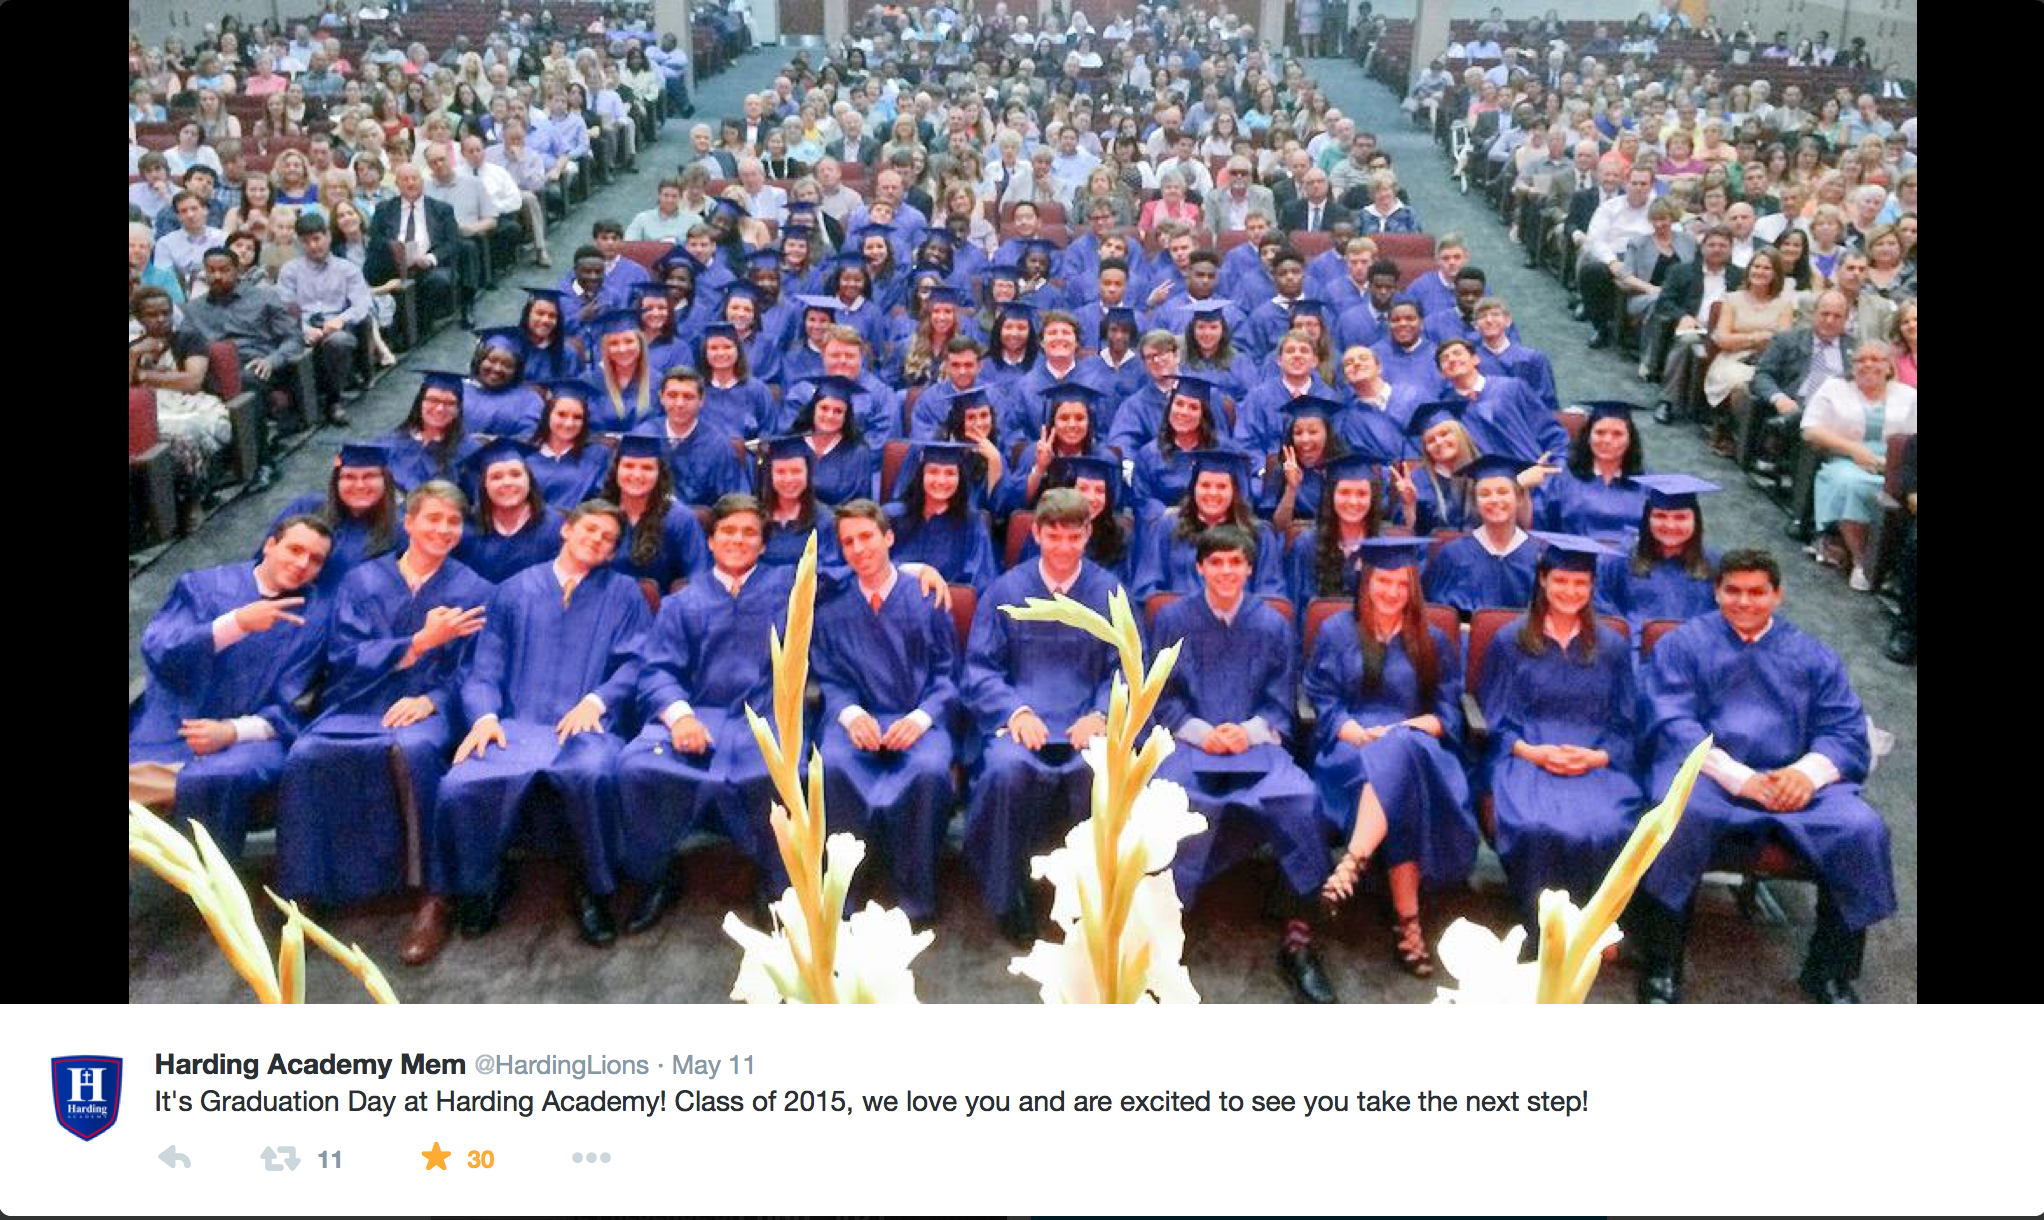 Photo taken by Seth King as he ended his address to the Senior Class of 2015 at Baccalaureate.